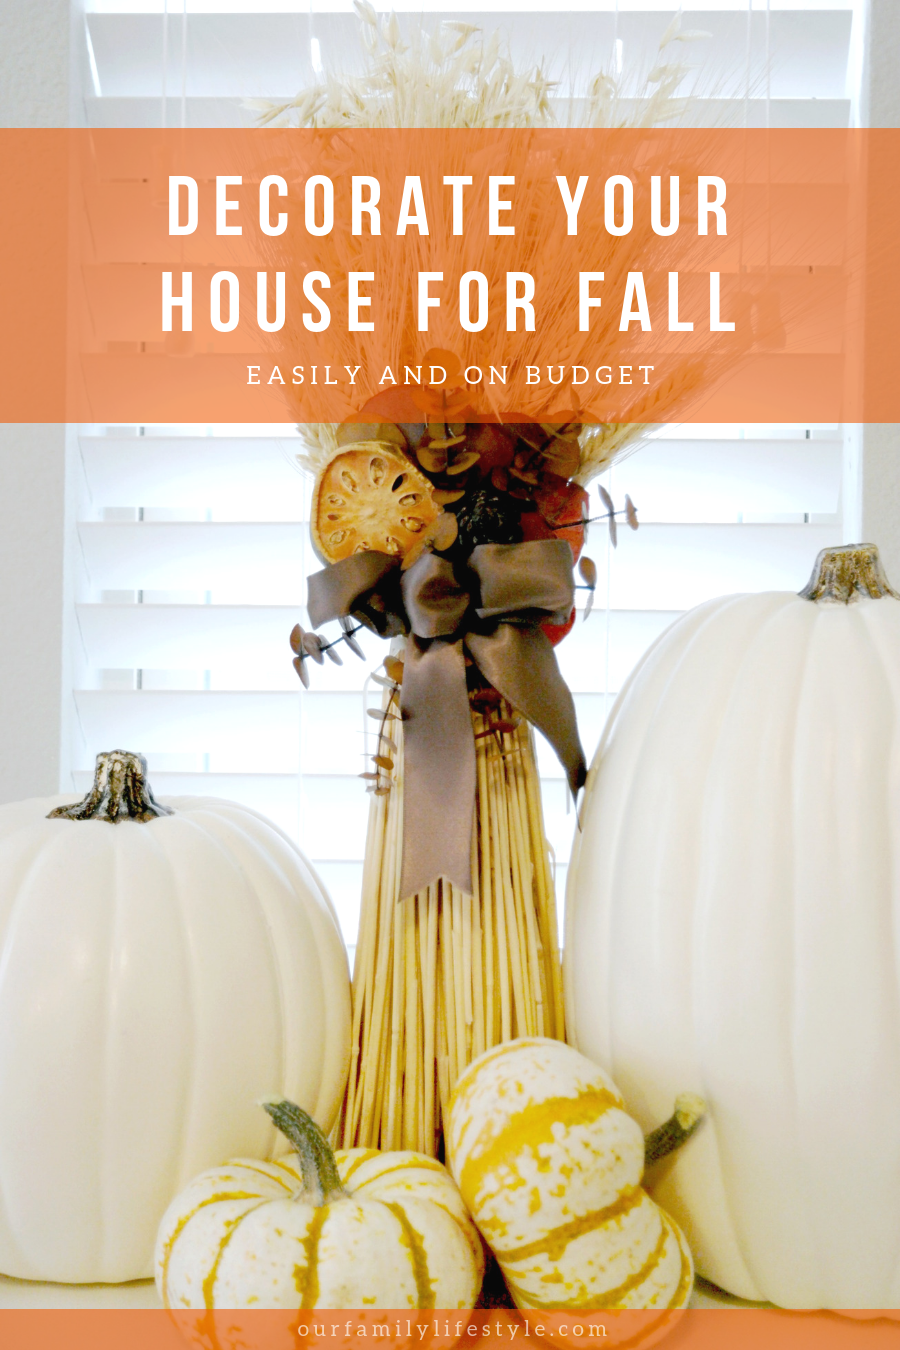 Decorate Your House for Fall